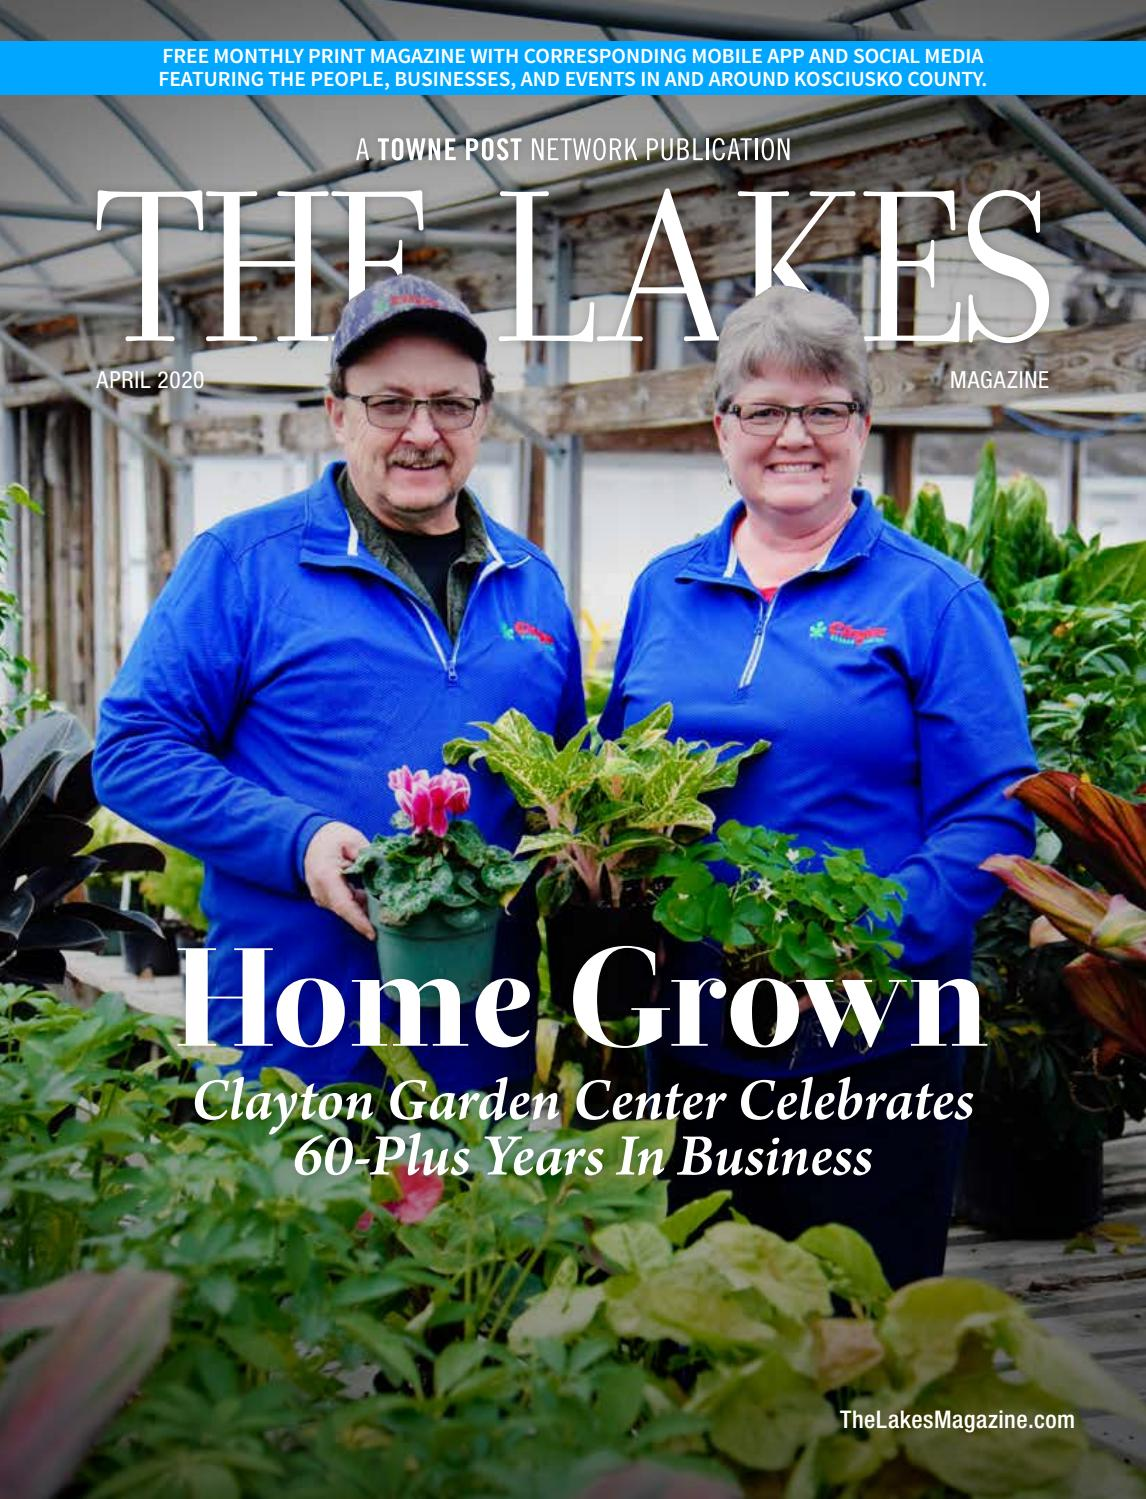 Warsaw Indiana Center Lake Park Christmas Lights 2020 Prediction The Lakes Magazine April 2020 by Towne Post Network, Inc.   issuu